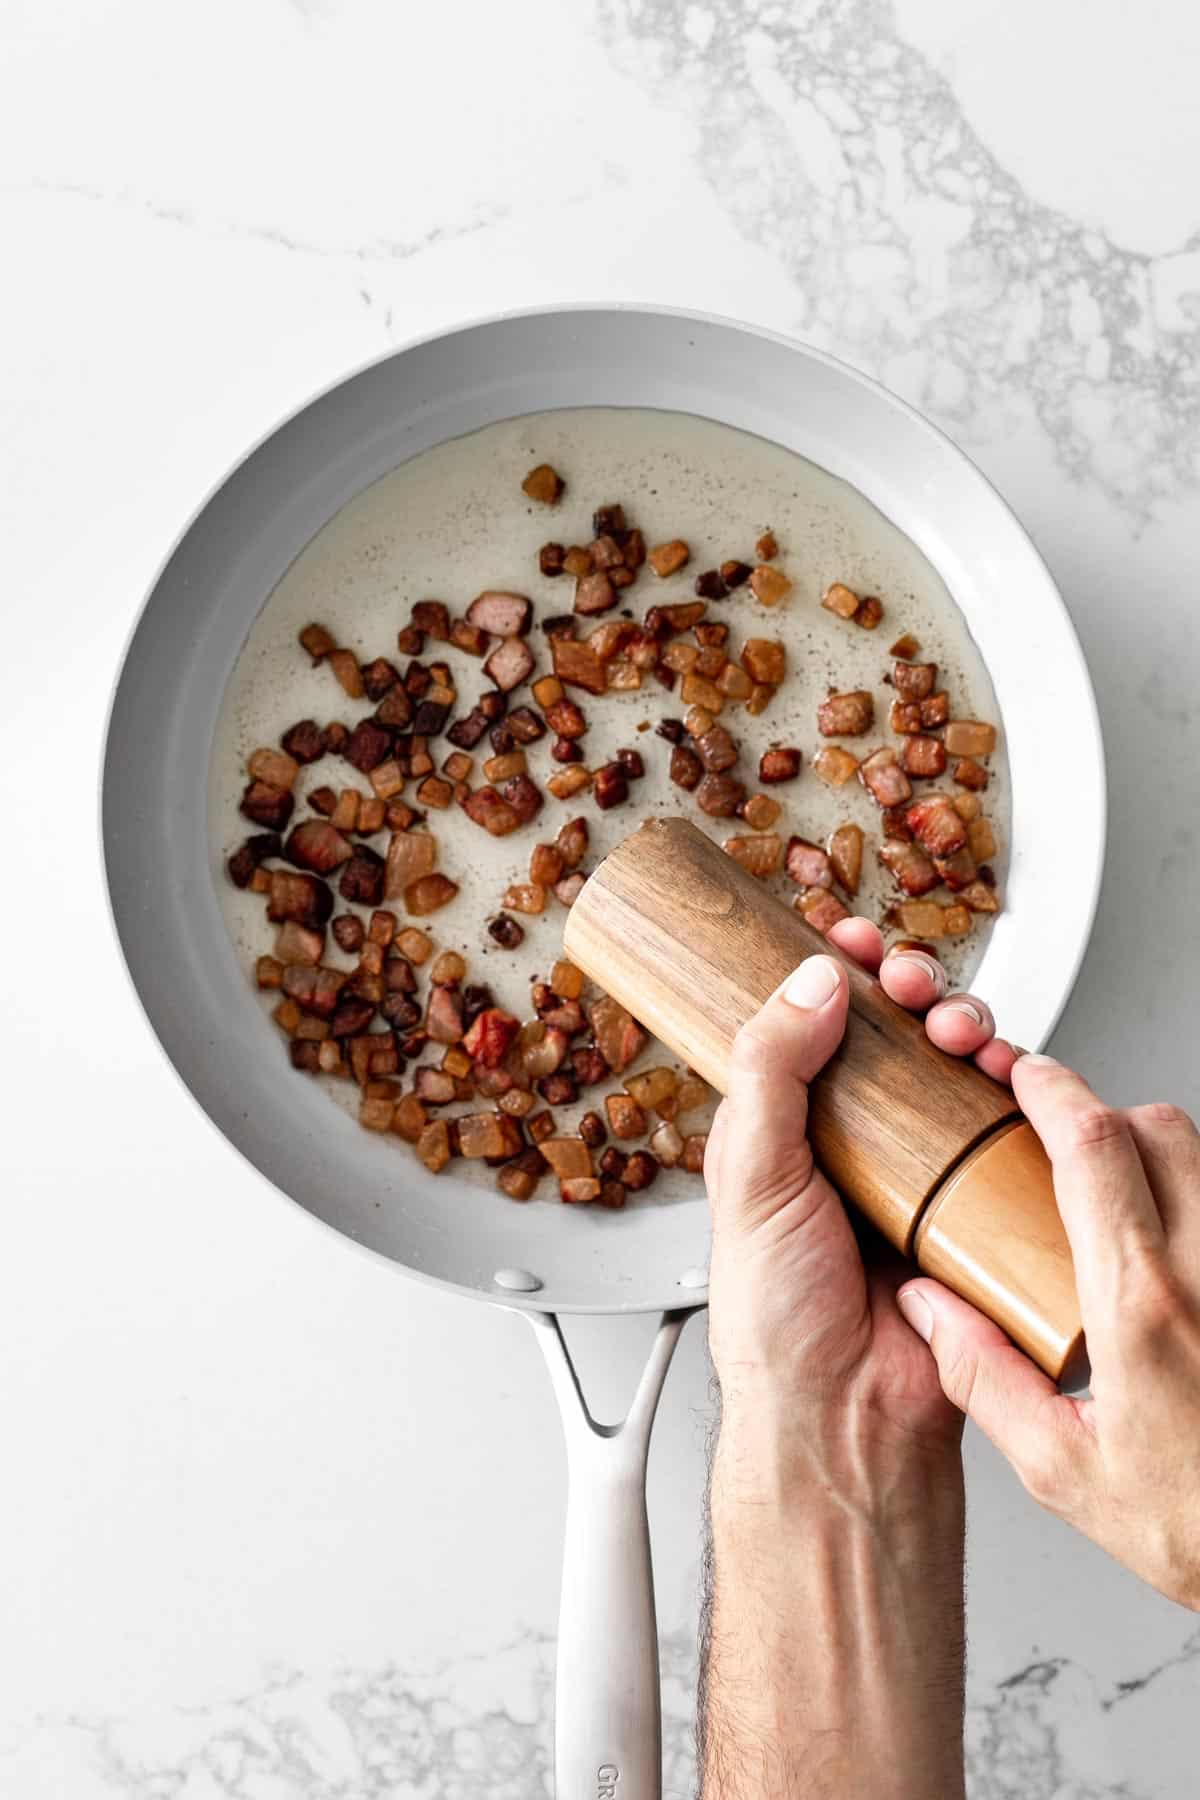 Hand grinding pepper into a pan with crispy pork